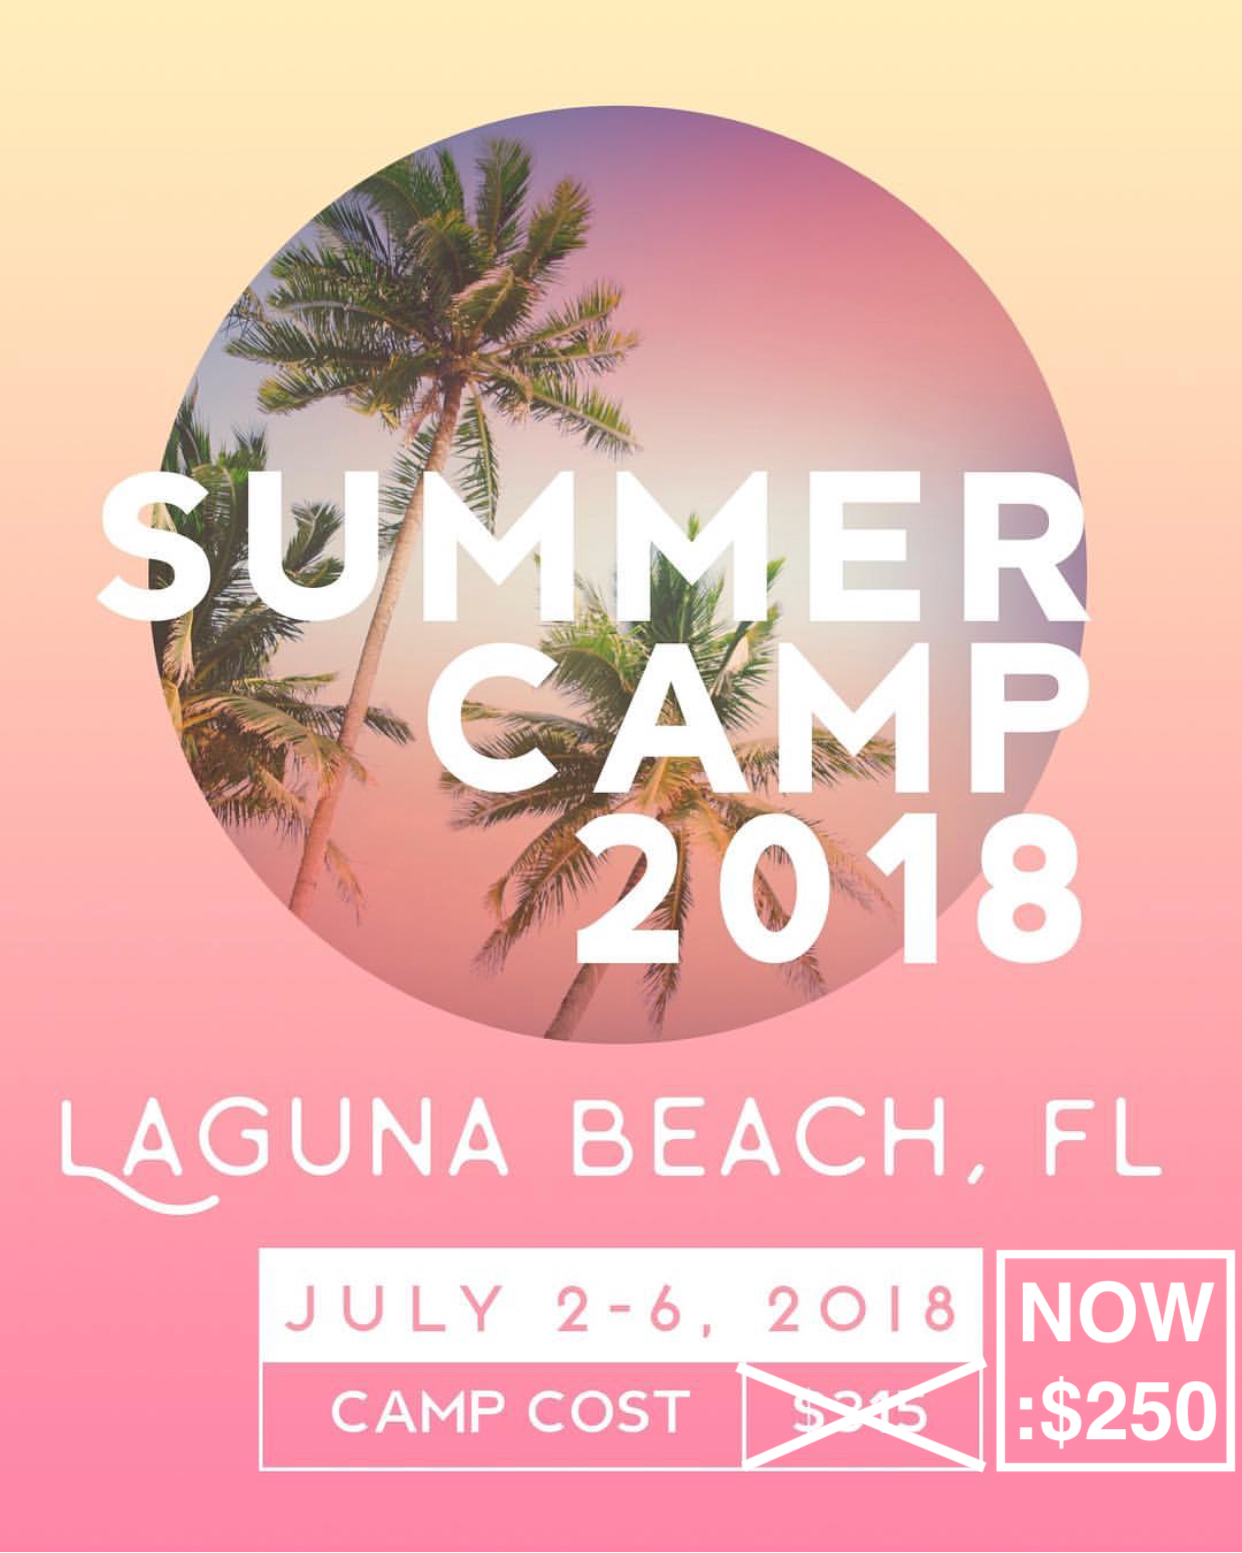 Summer camp updated